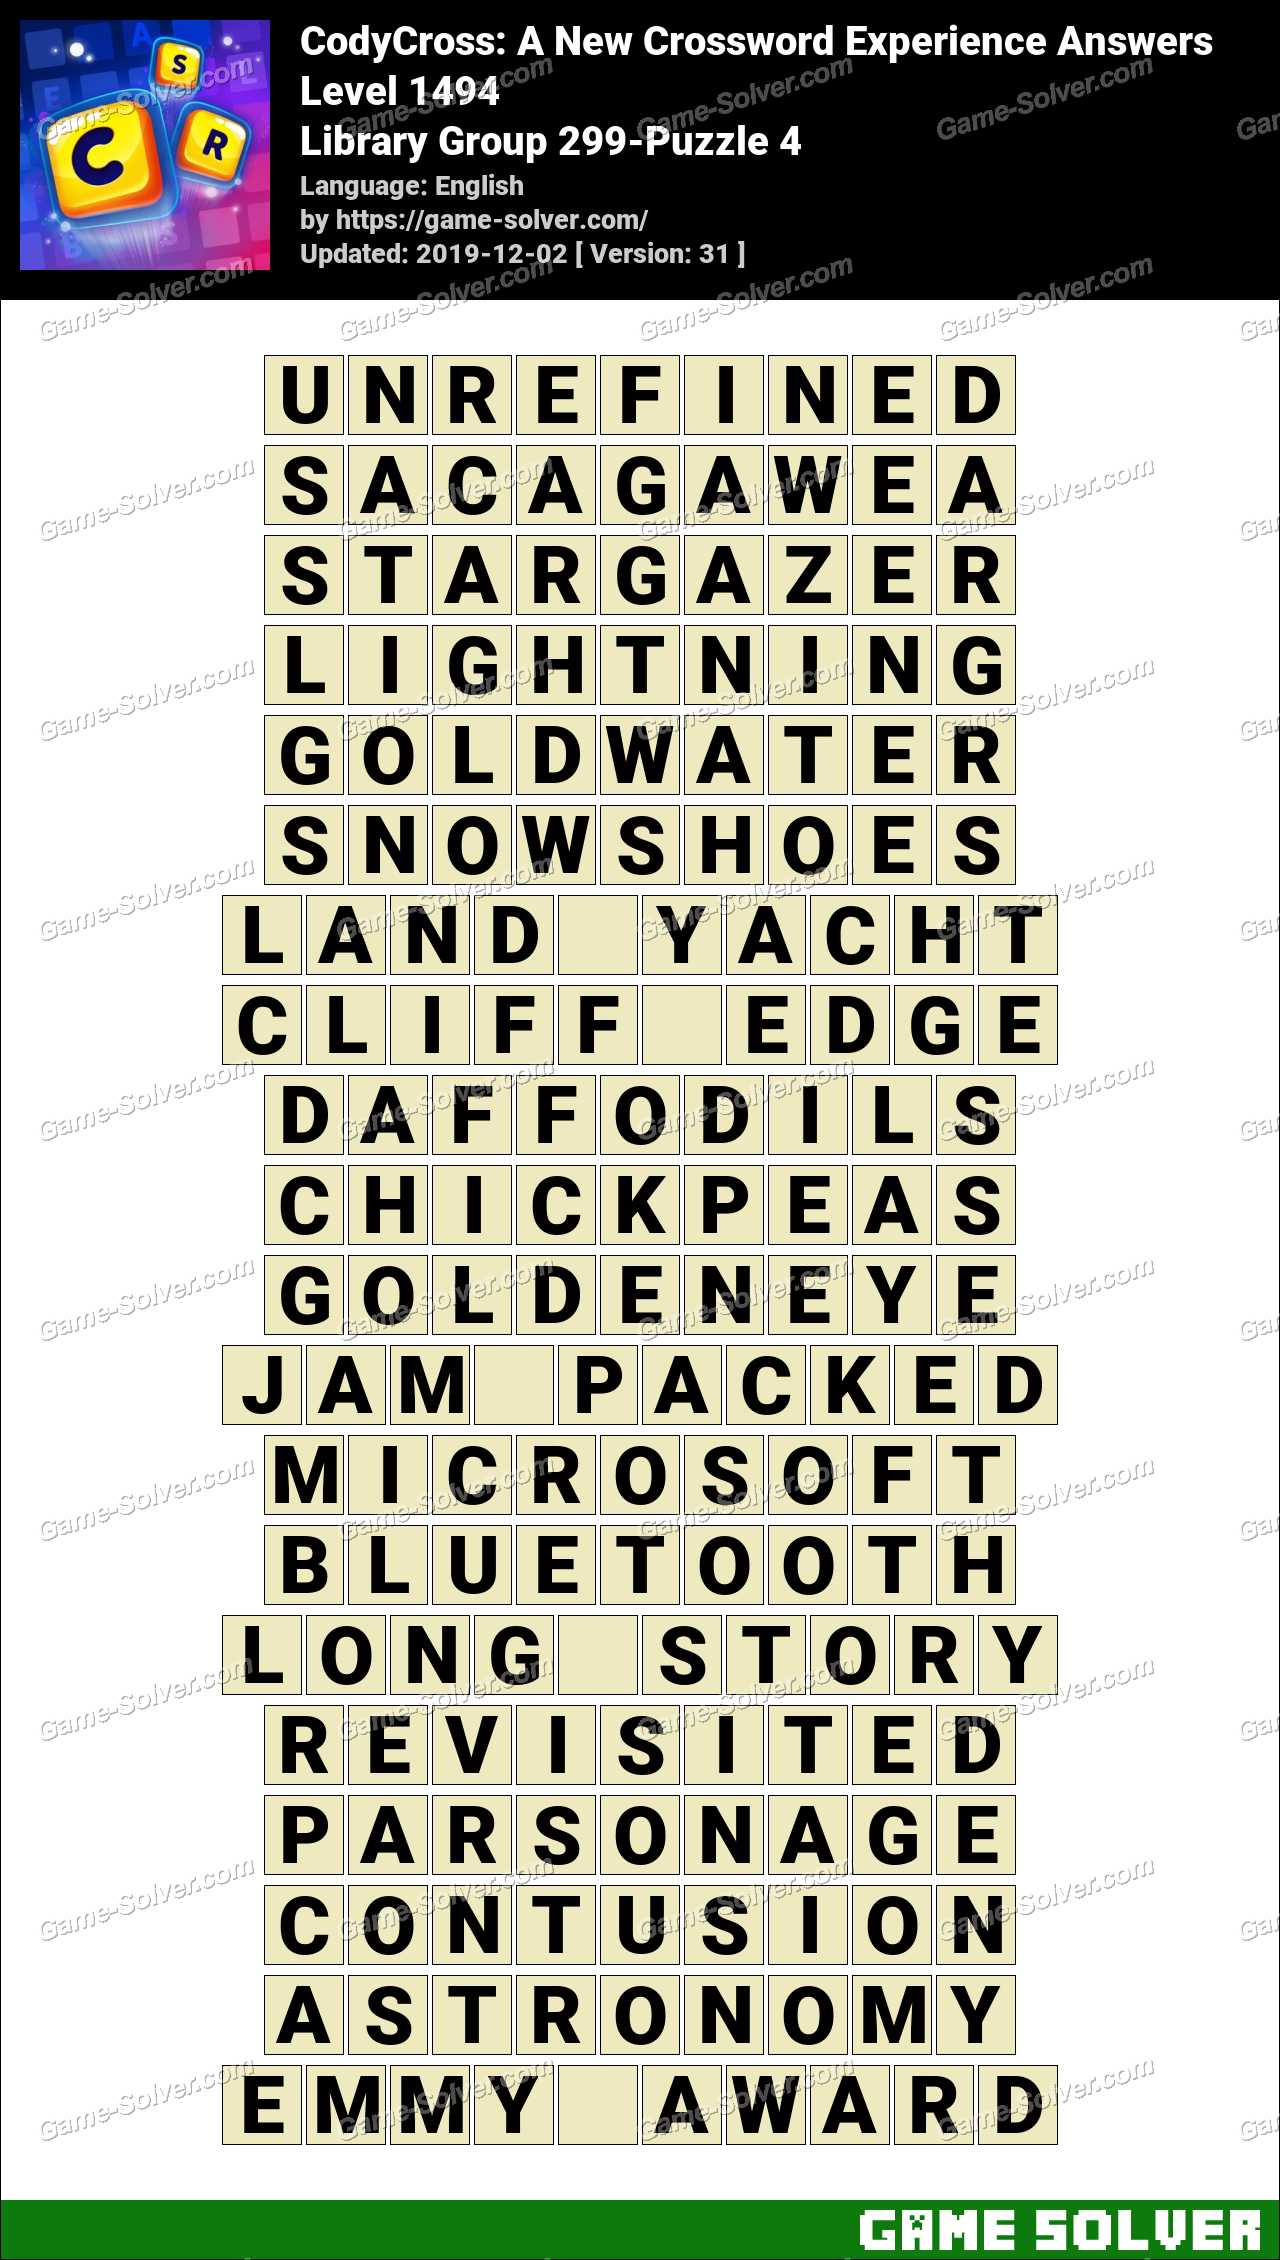 CodyCross Library Group 299-Puzzle 4 Answers